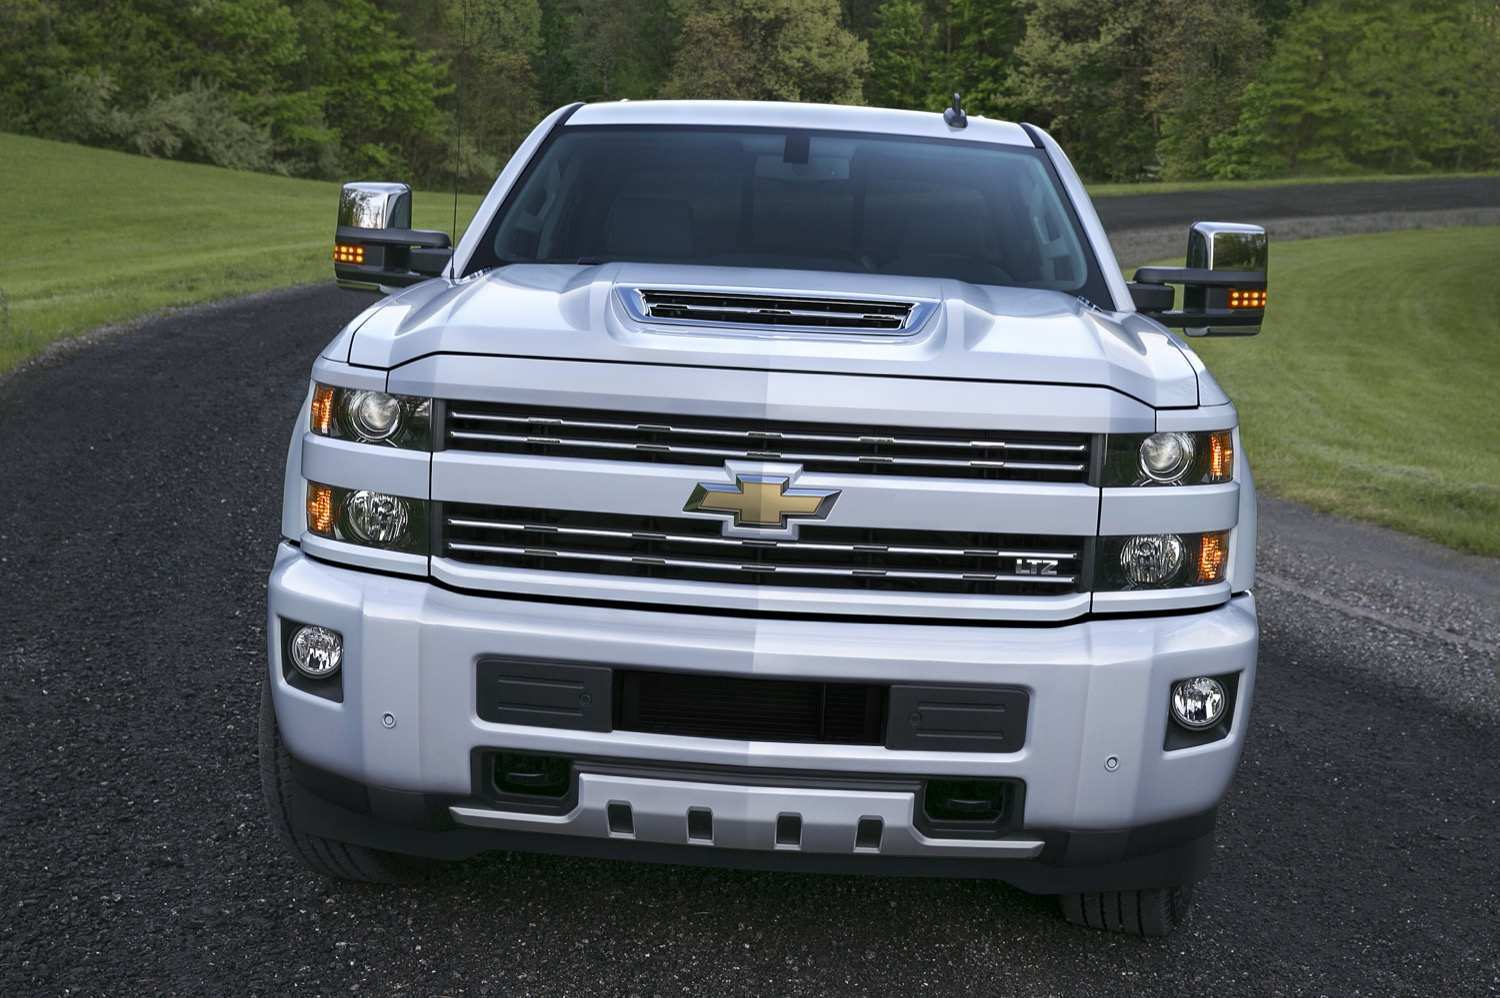 84 Best Review The Chevrolet Pickup 2019 Diesel Engine New Concept by The Chevrolet Pickup 2019 Diesel Engine